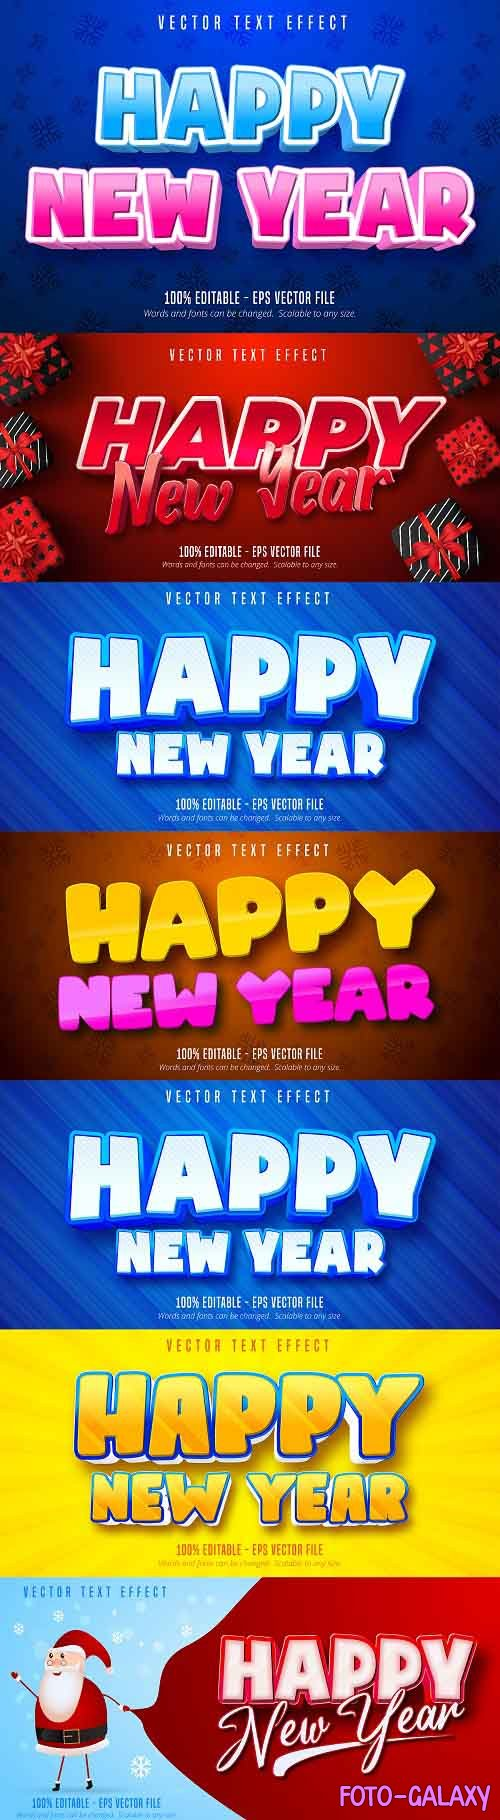 Editable font effect text collection illustration design 233 - Happy New Year